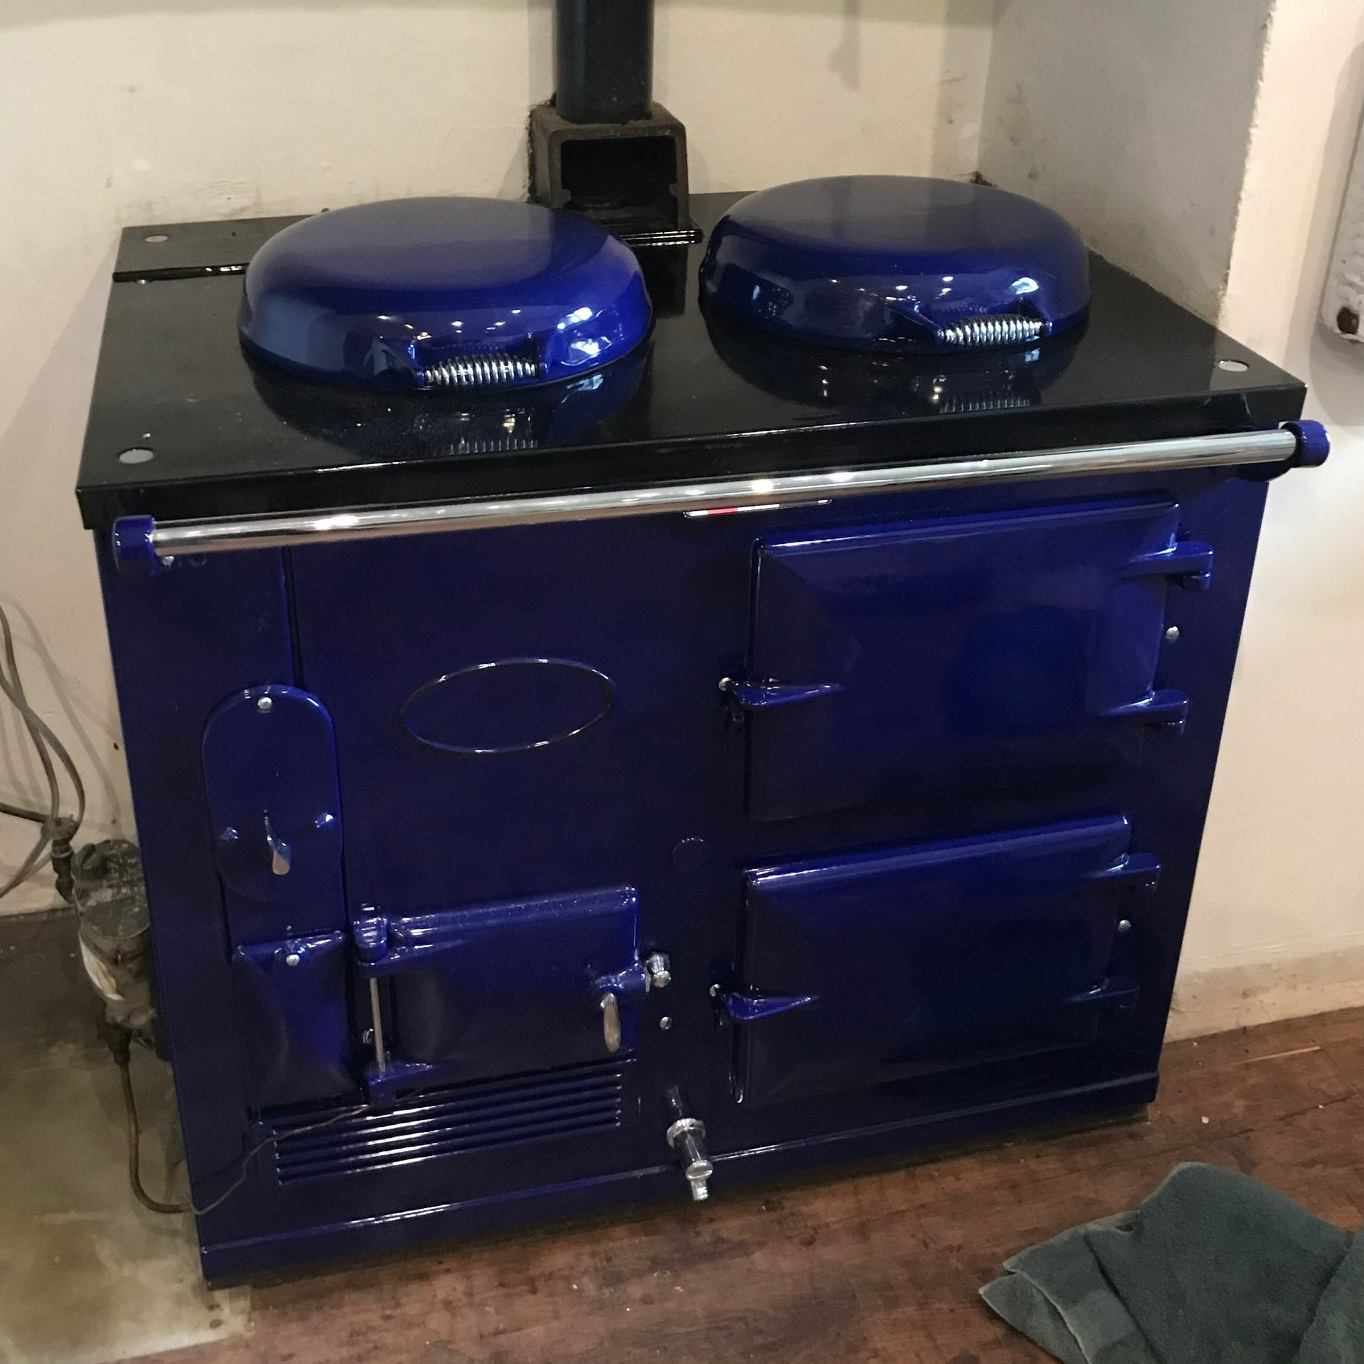 Re-enamelled royal blue 'Standard' Aga range cooker